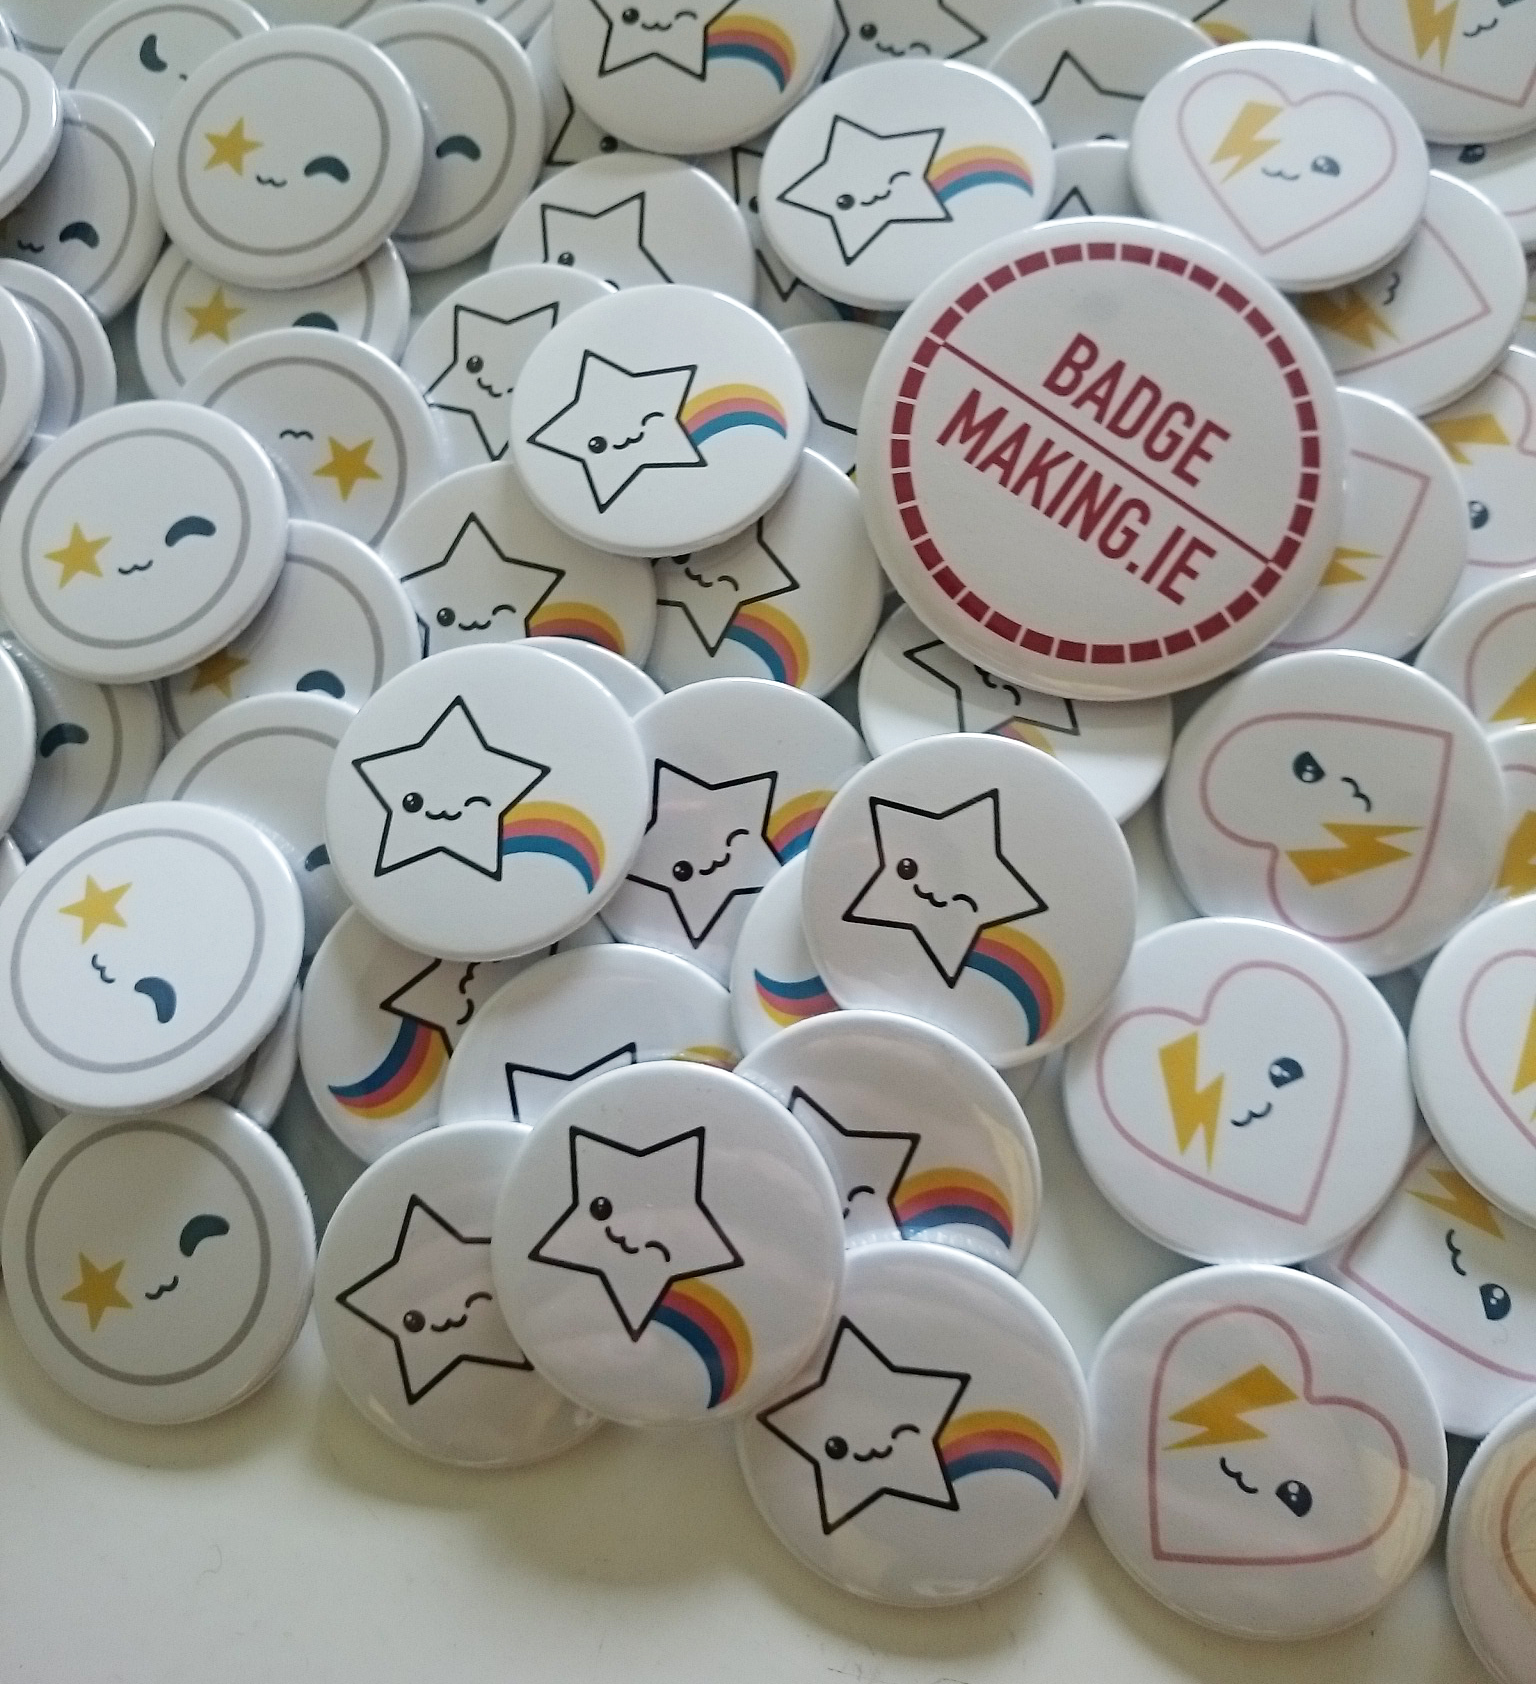 38mm Printed Badges for Moobles and Toobles for the Playtime Trade Show in Paris